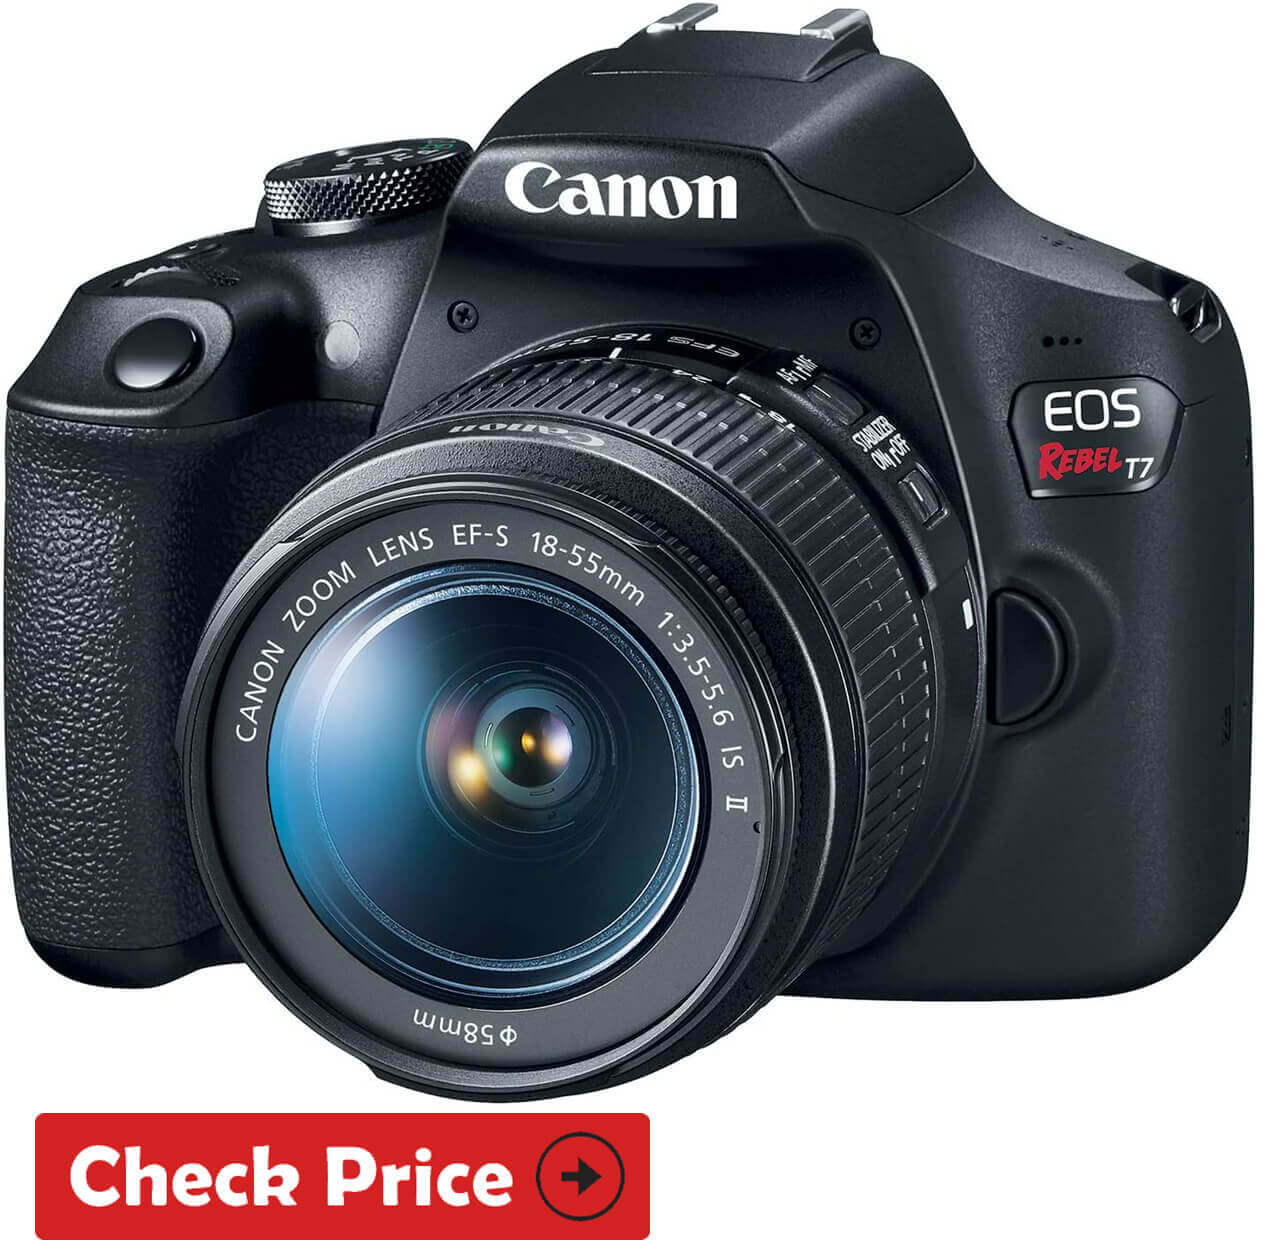 Canon - EOS Rebel T7 camera for black friday